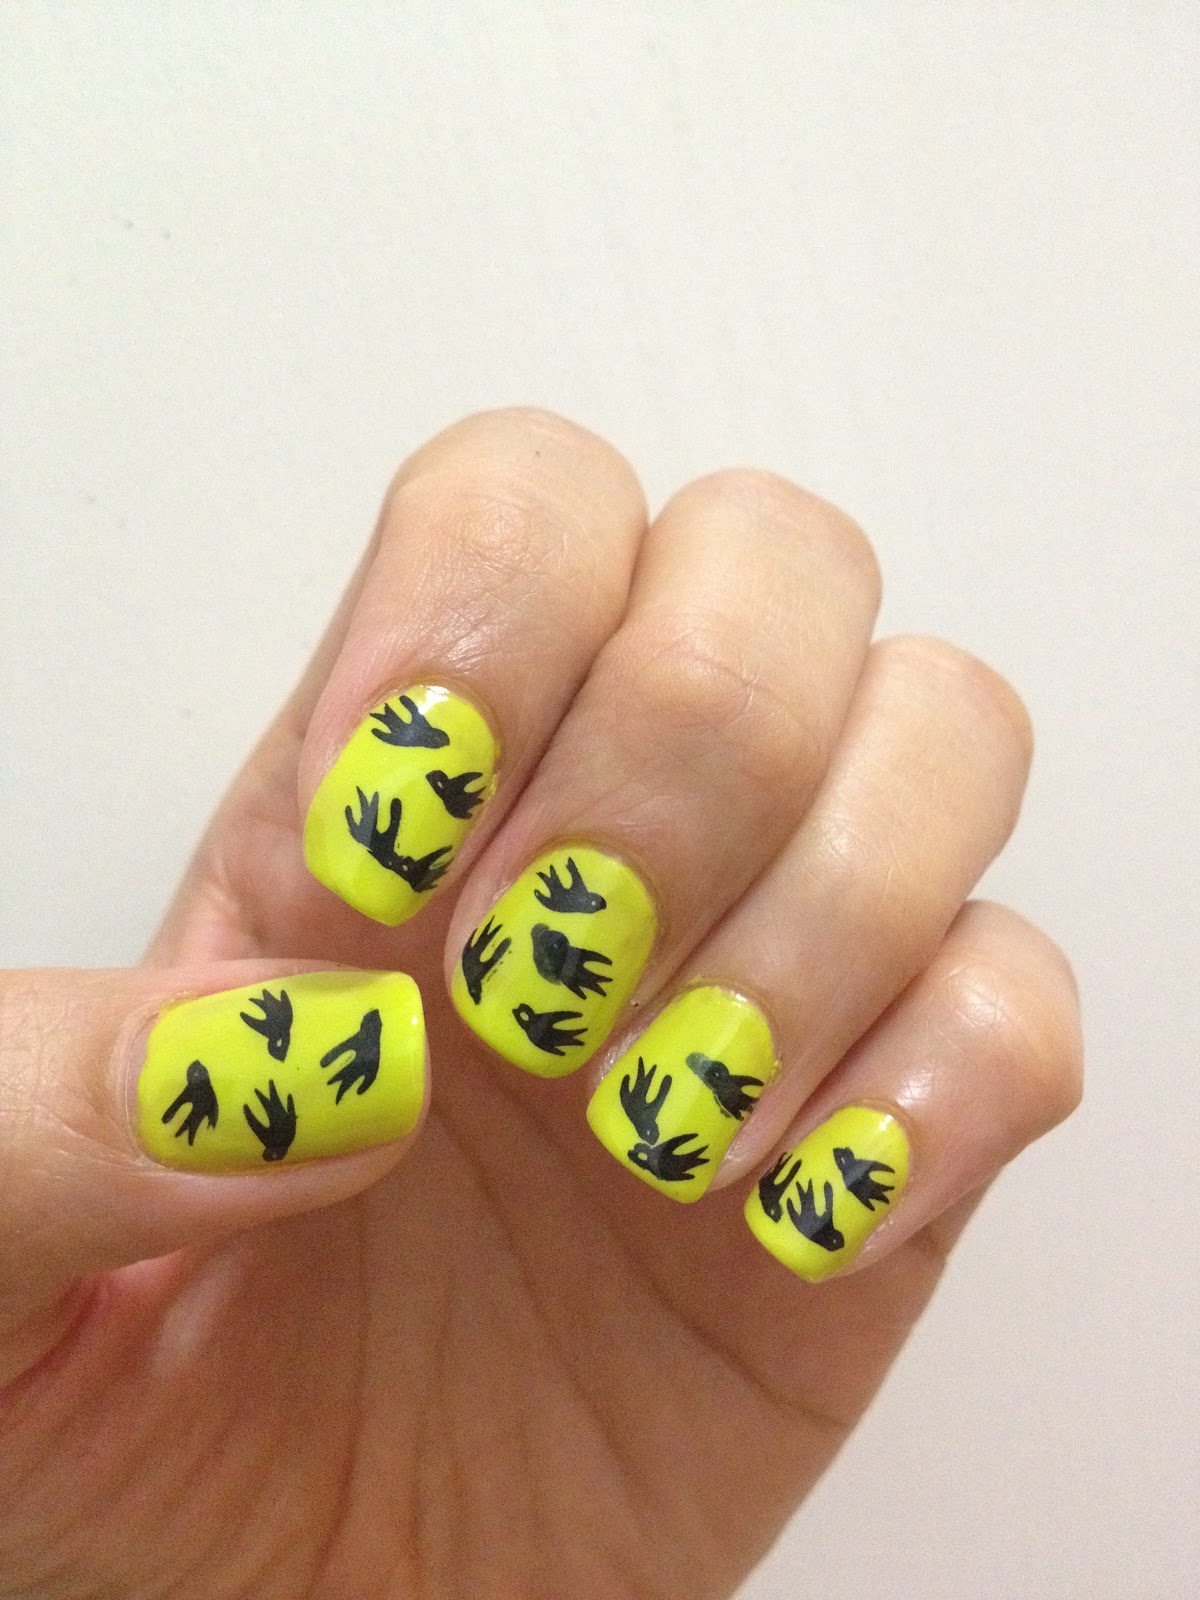 Swallow nail art design! | ilovenailart ✿♥‿♥✿